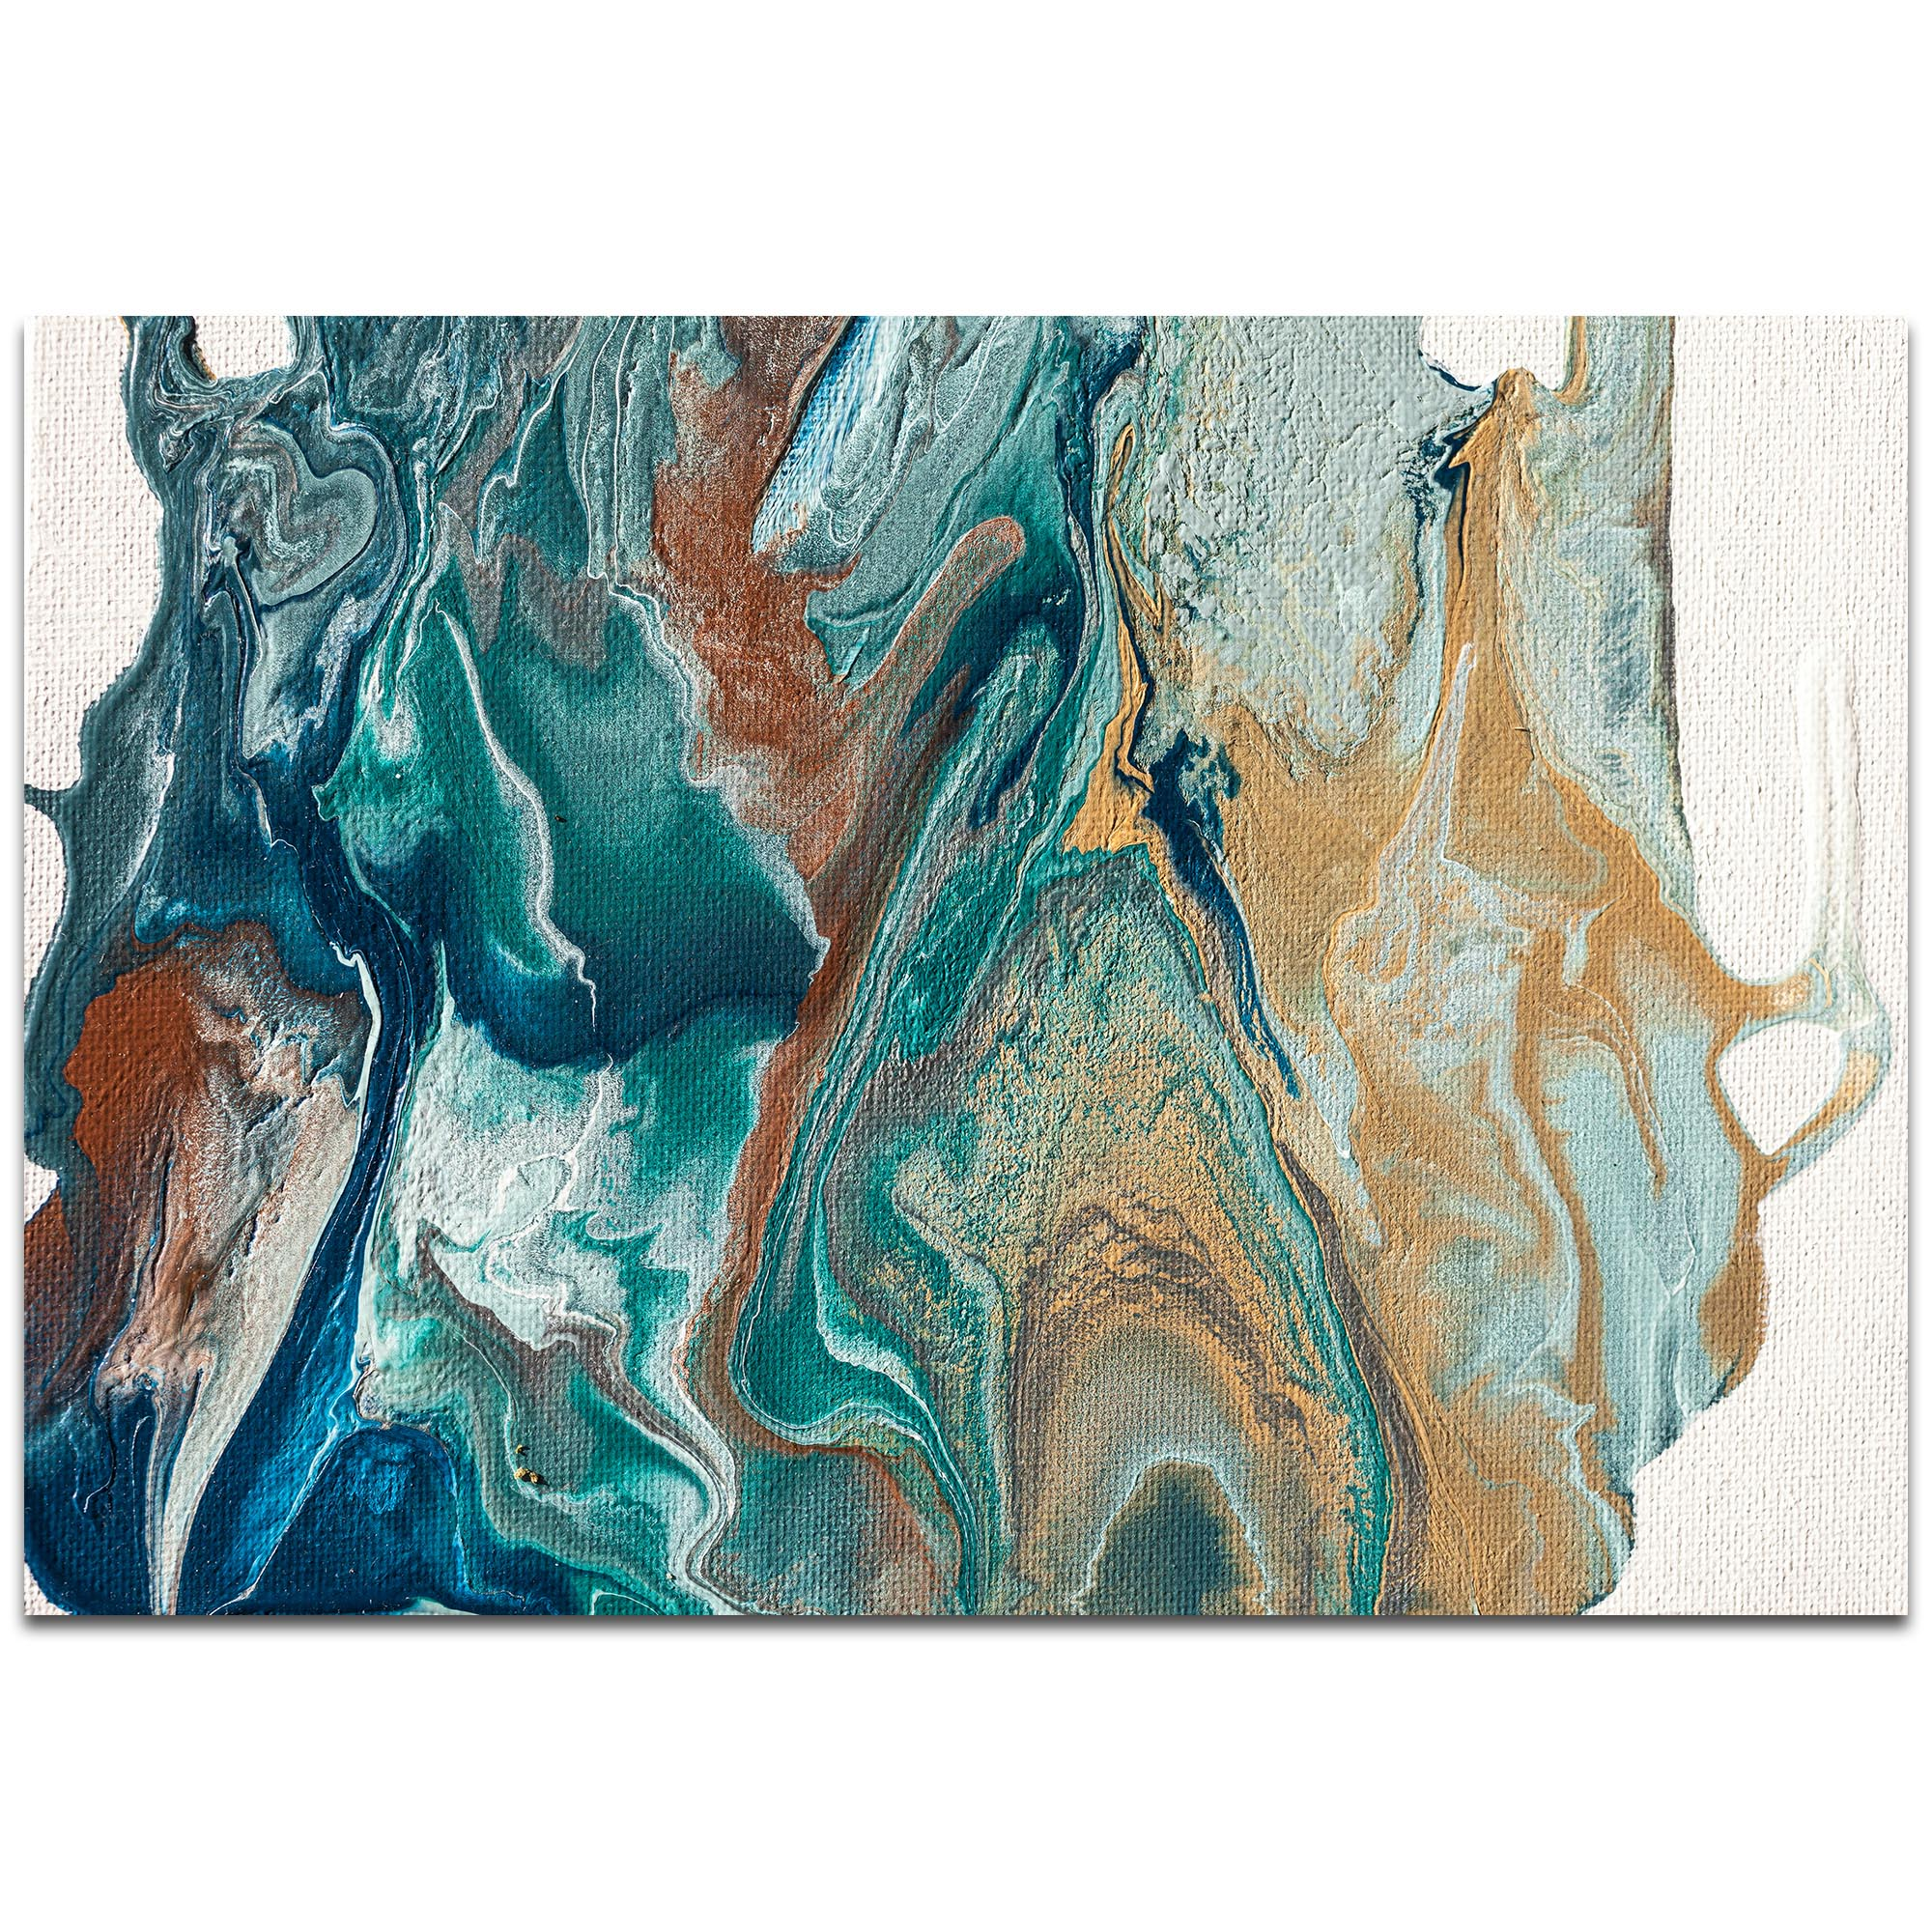 Abstract Wall Art 'Earth 2' - Urban Splatter Decor on Metal or Plexiglass